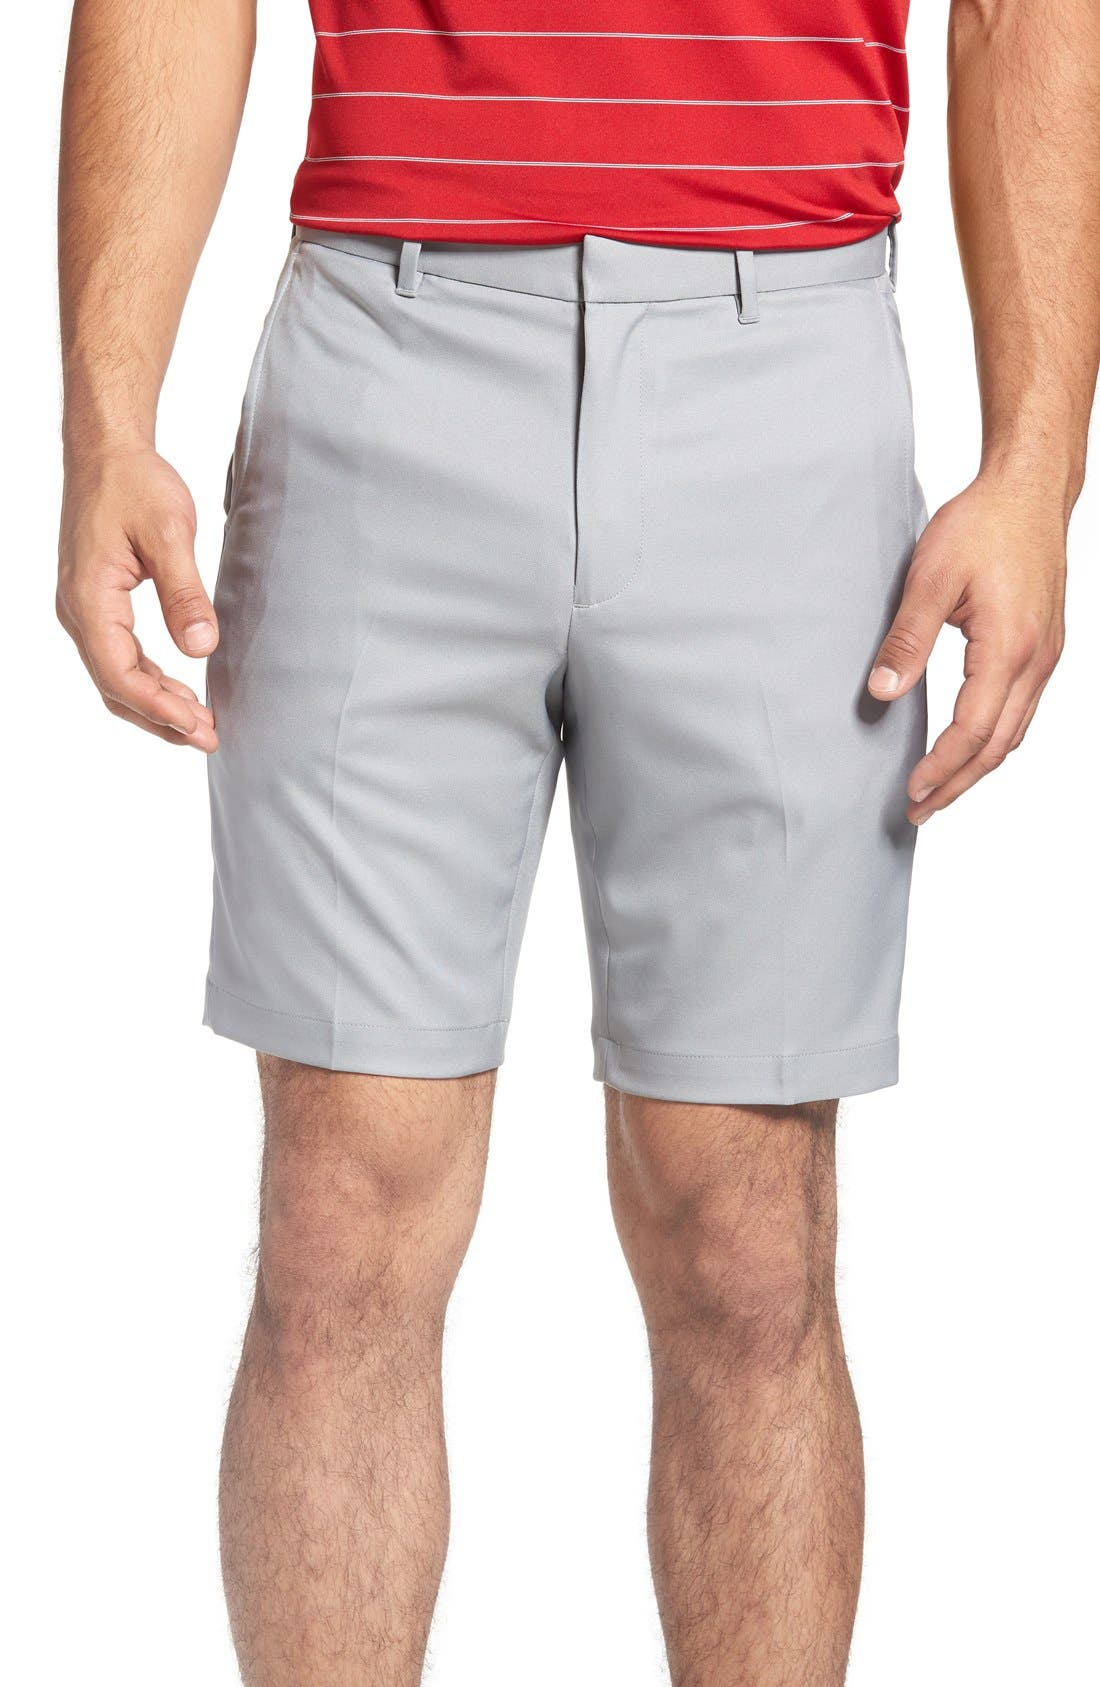 Bobby Jones 'Tech' Flat Front Wrinkle Free Golf Shorts